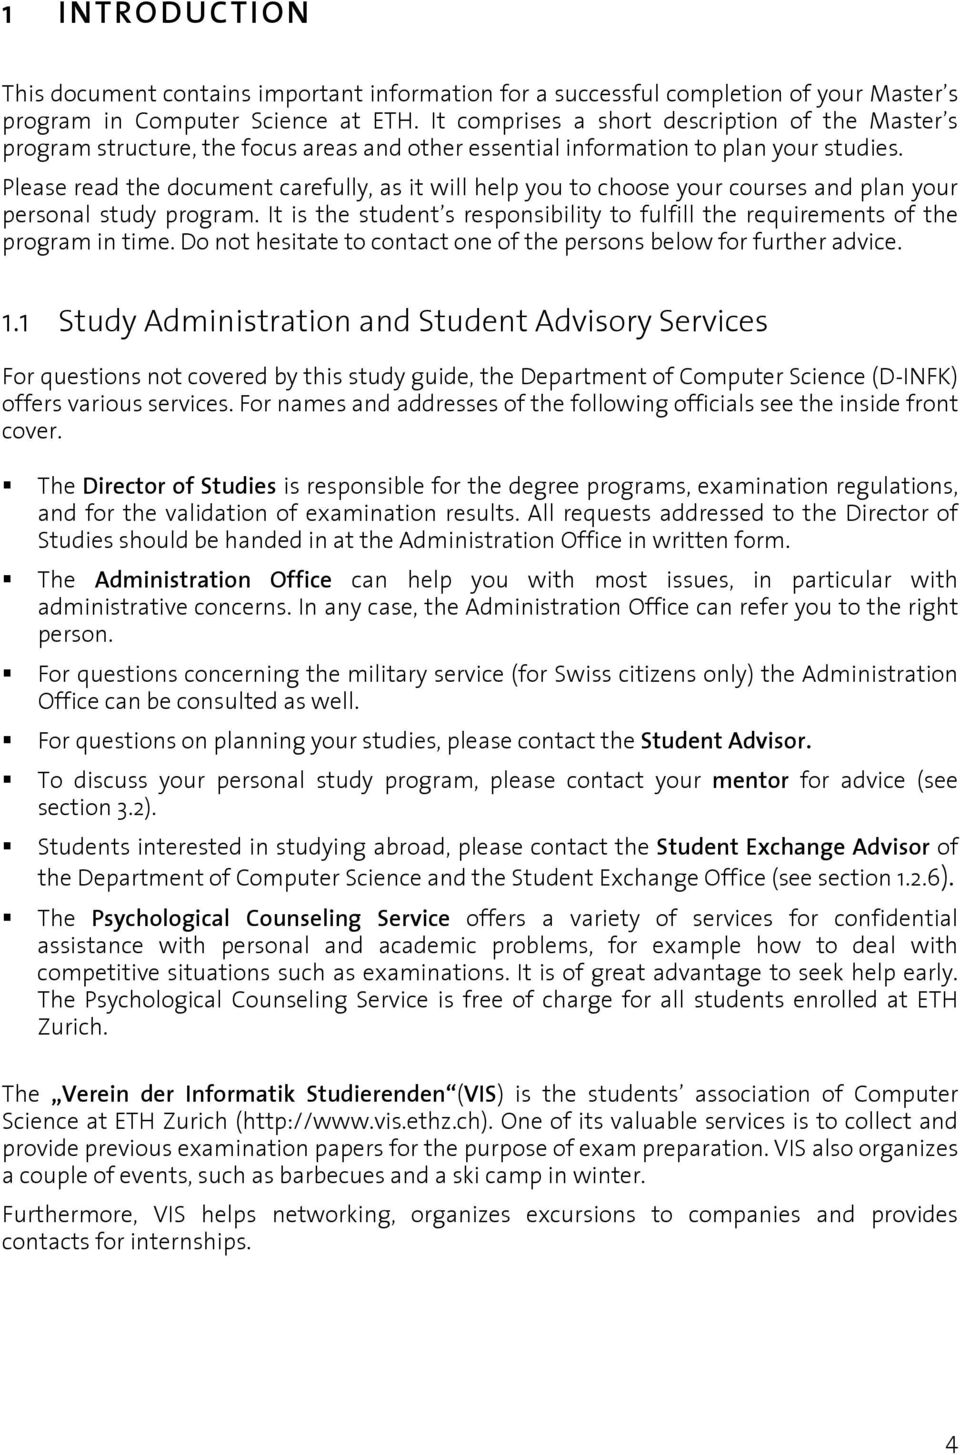 Please read the document carefully, as it will help you to choose your courses and plan your personal study program.